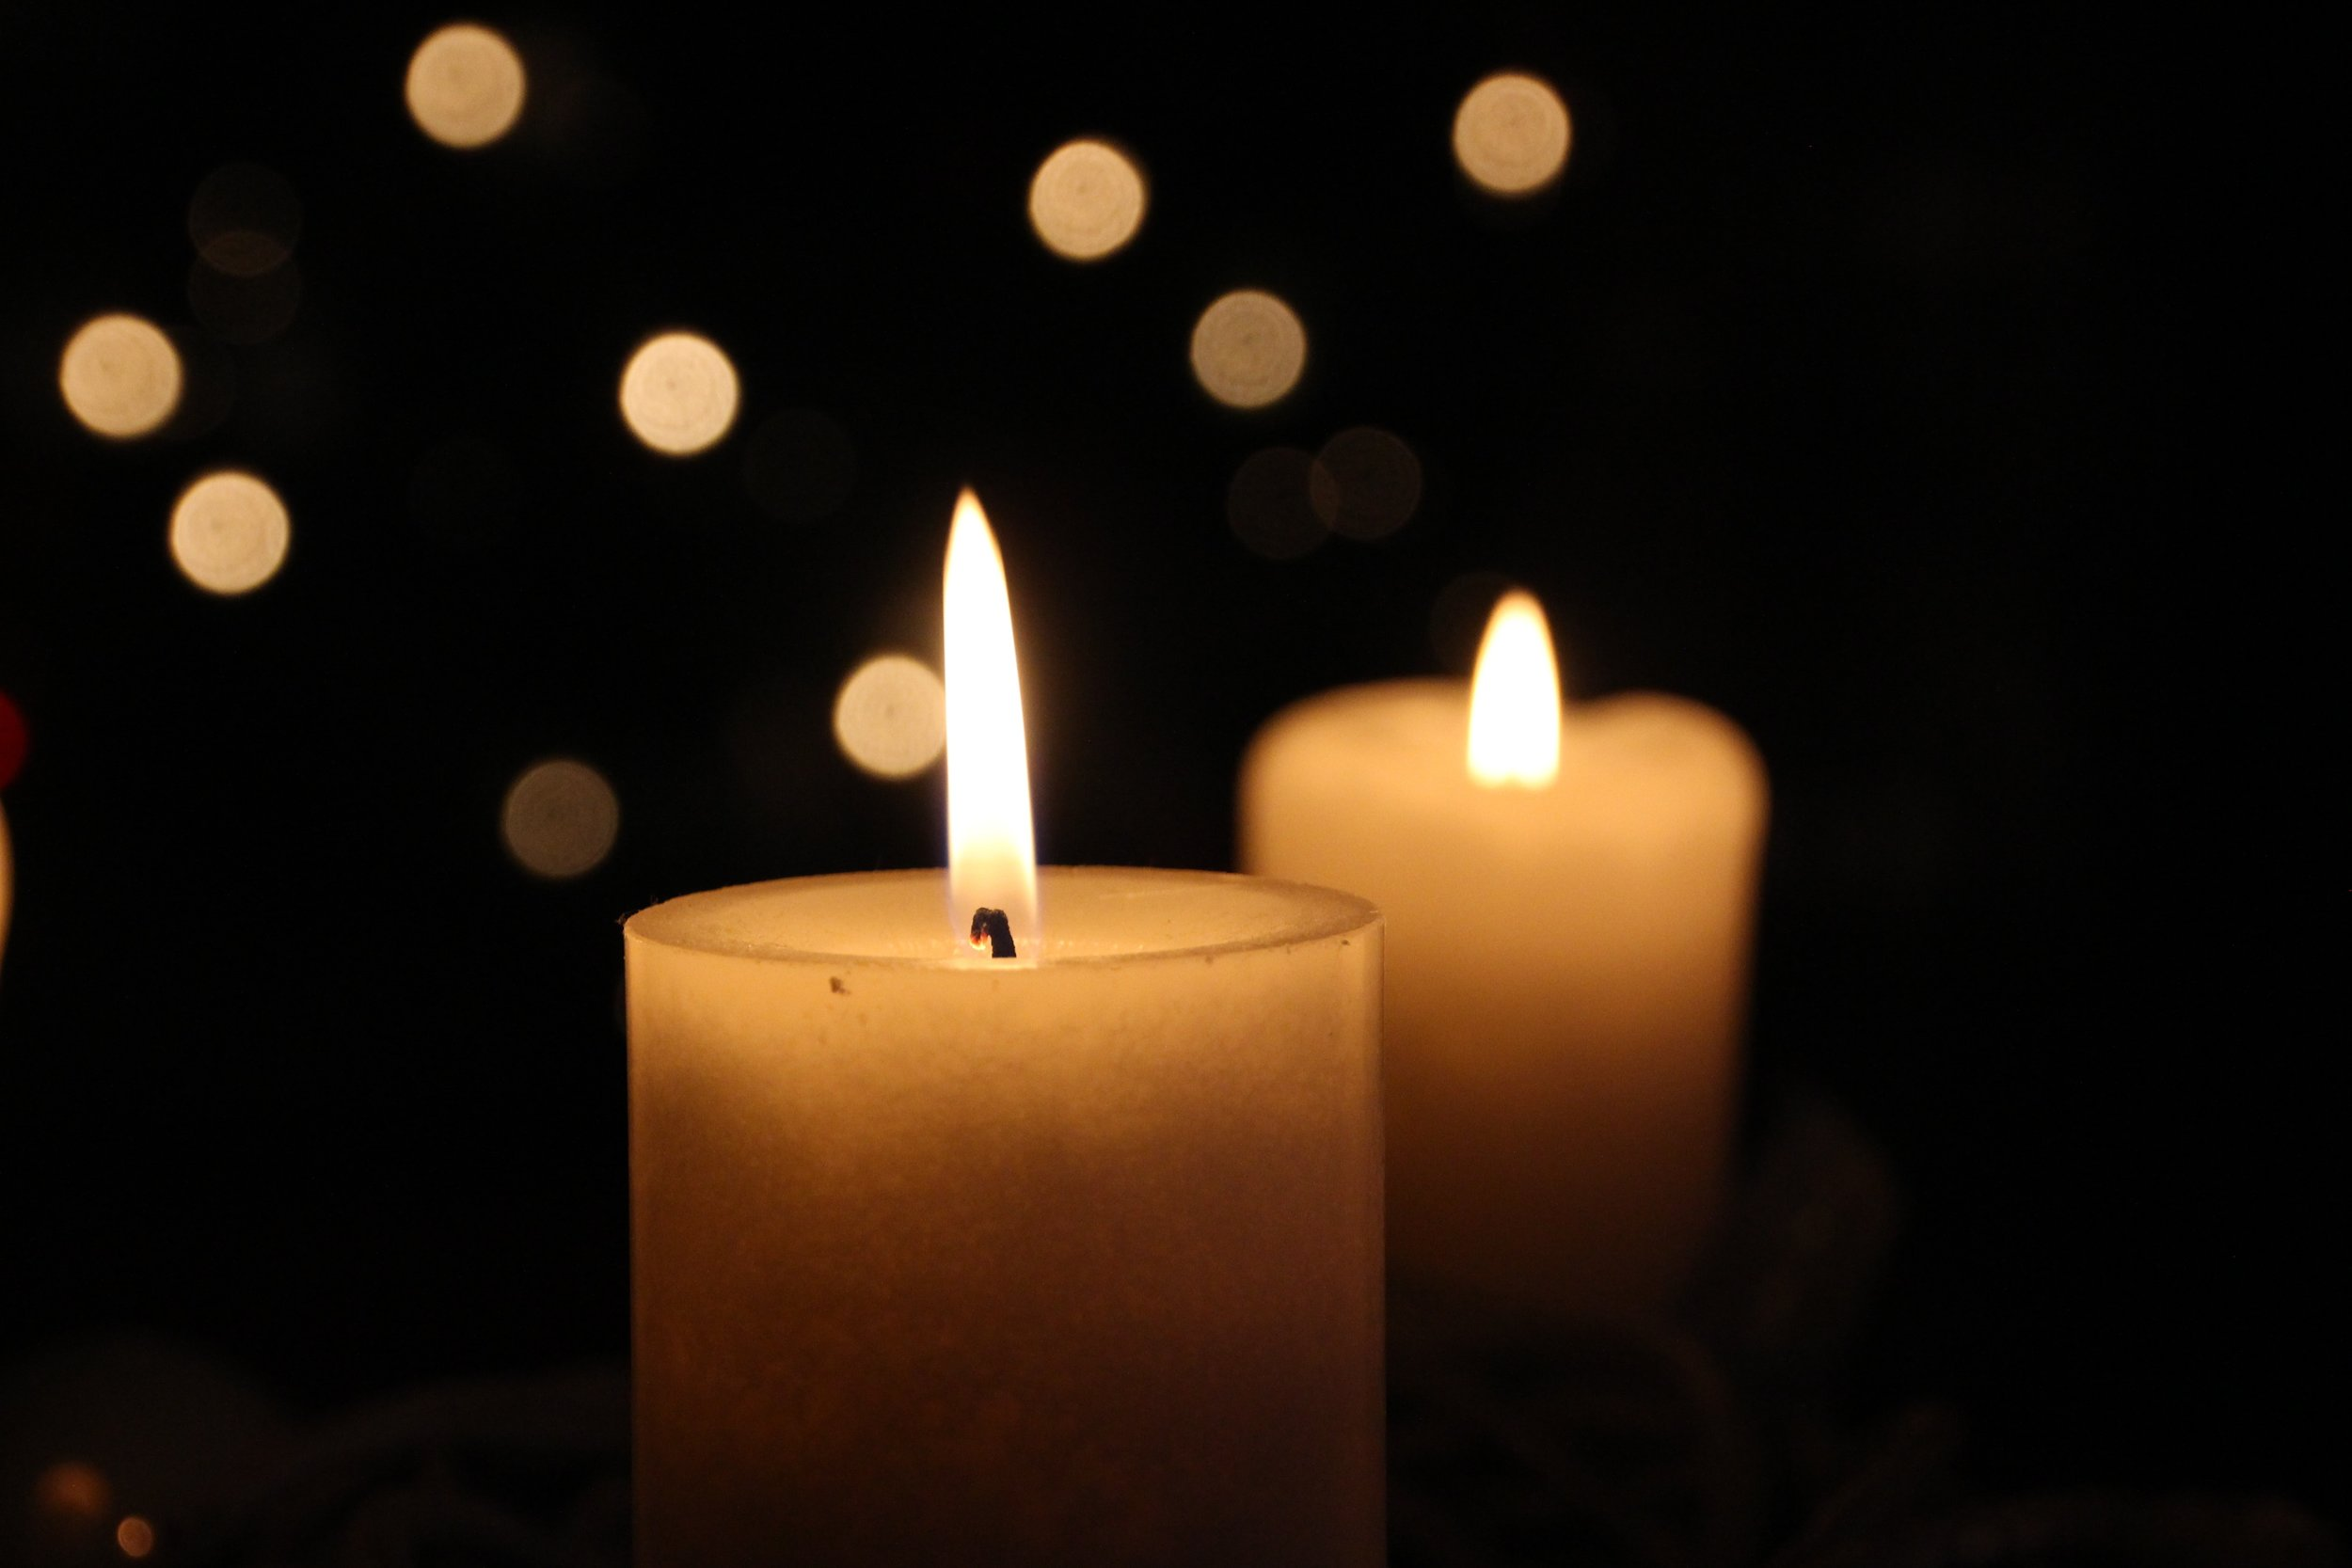 light-night-flame-darkness-candle-christmas-667321-pxhere.com.jpg